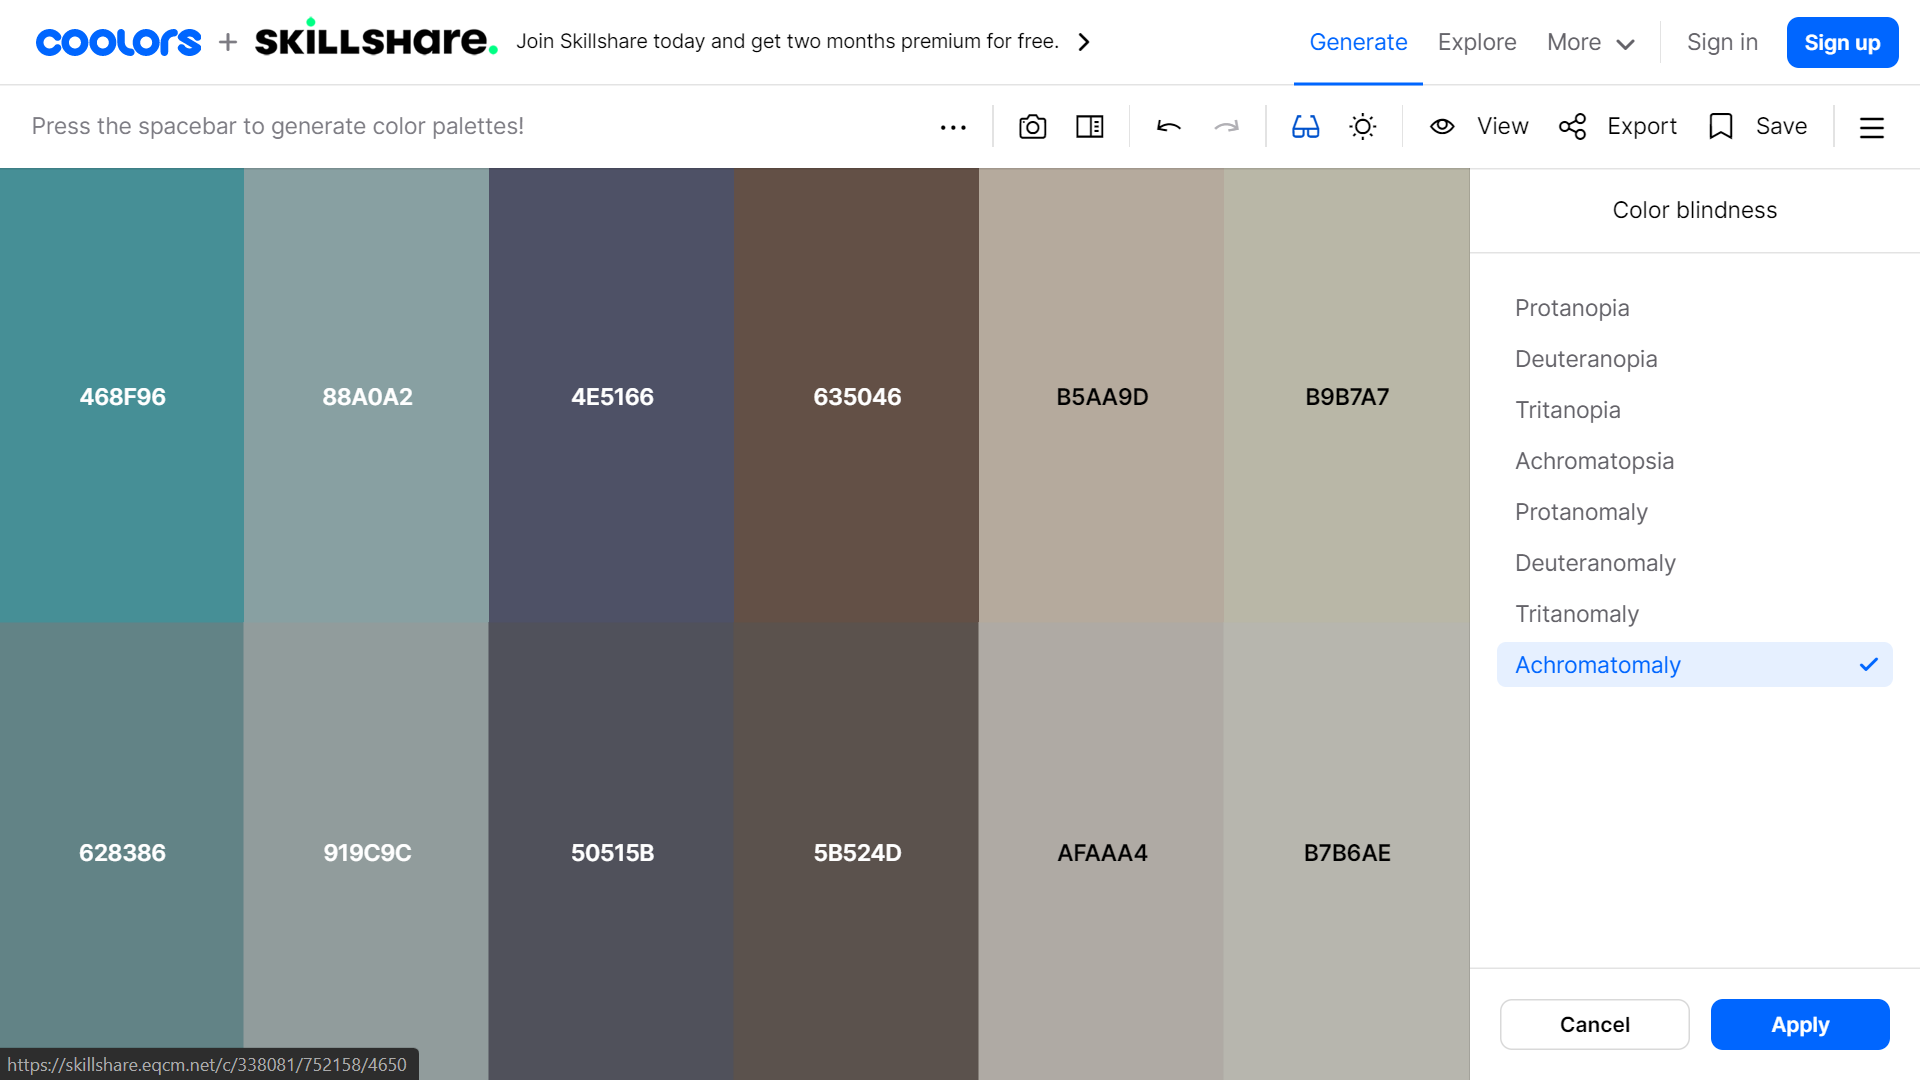 Coolors color palette for color blind users